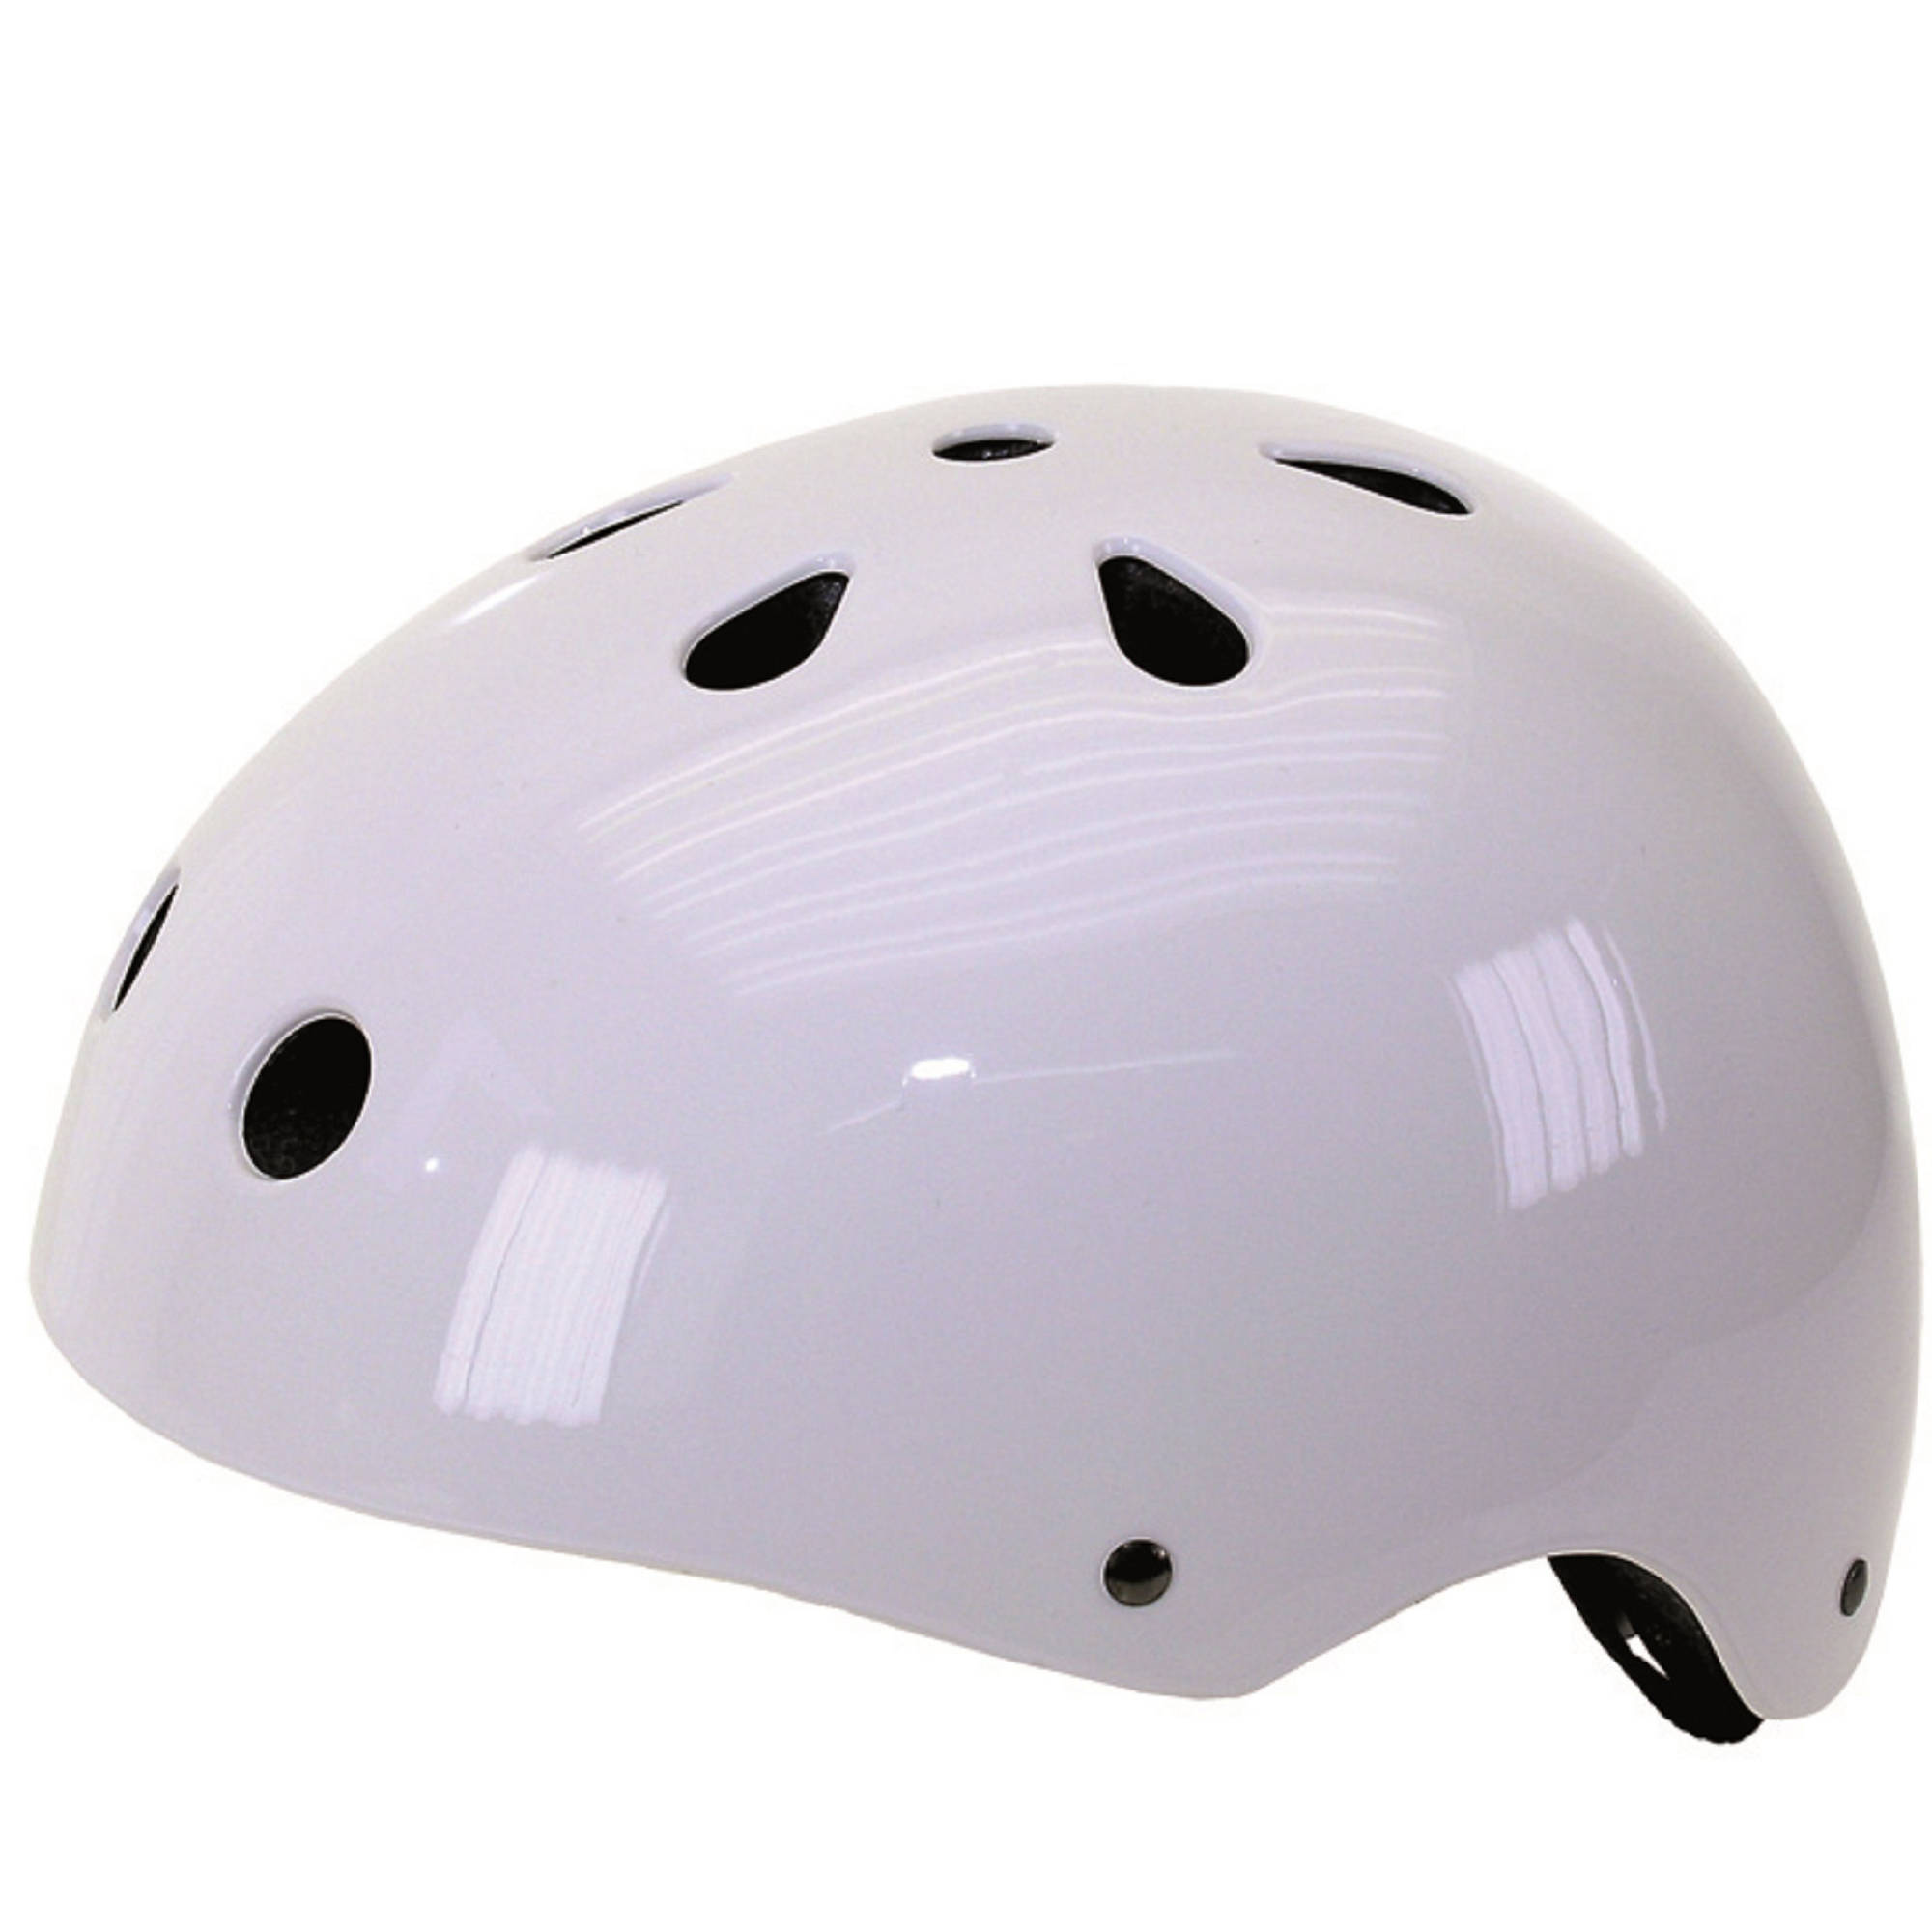 Ventura Freestyle Helmet M (54-58 cm) by Cycle Force Group